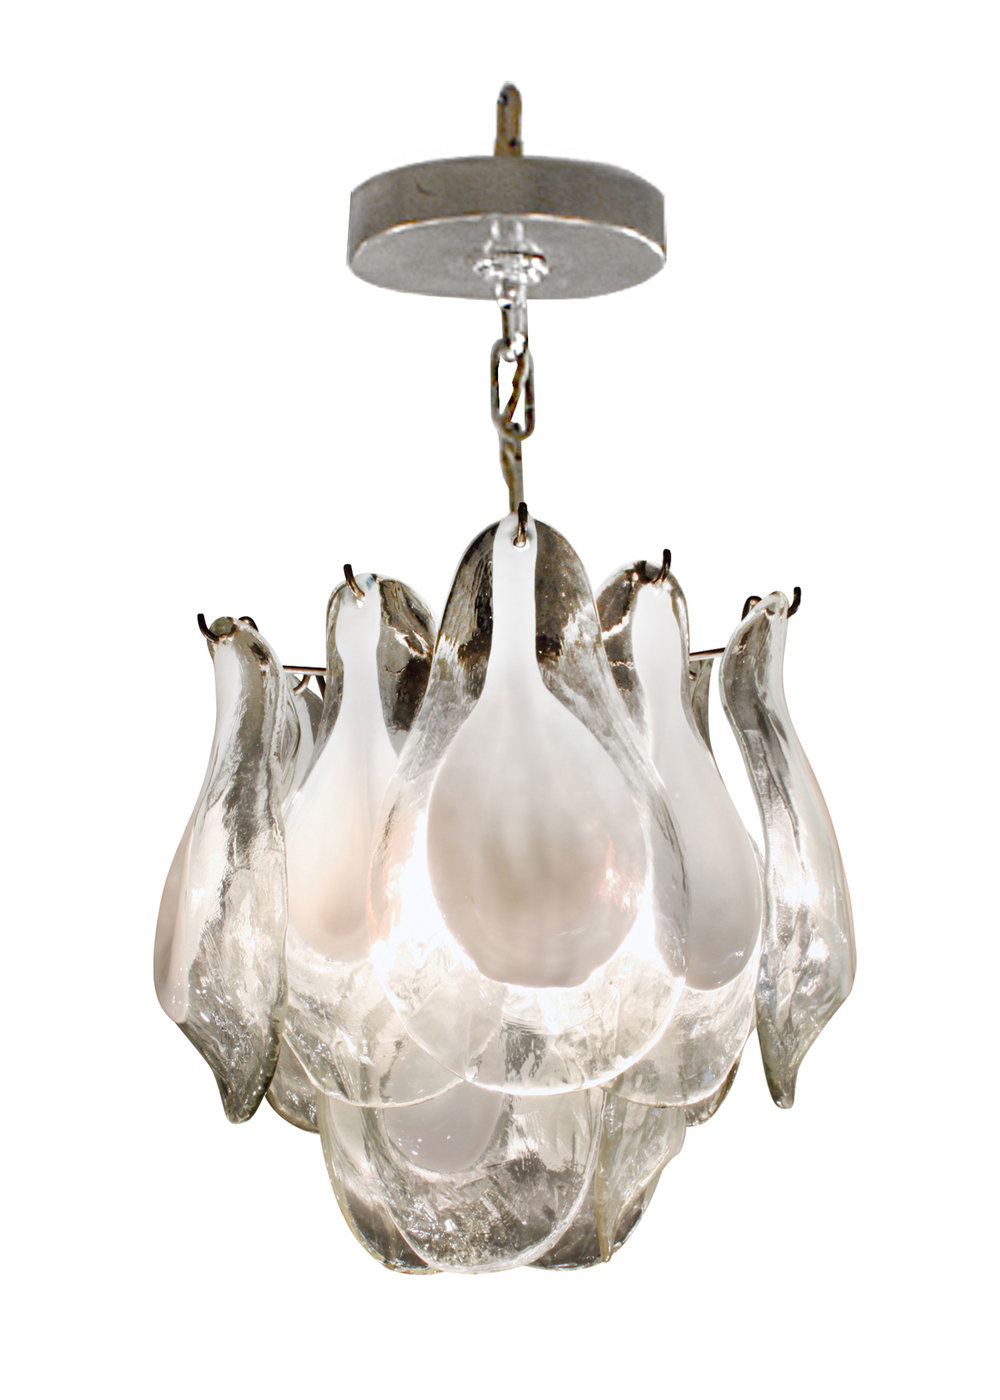 Vistosi 45 small clr+white petals chandelier189 main4.jpg